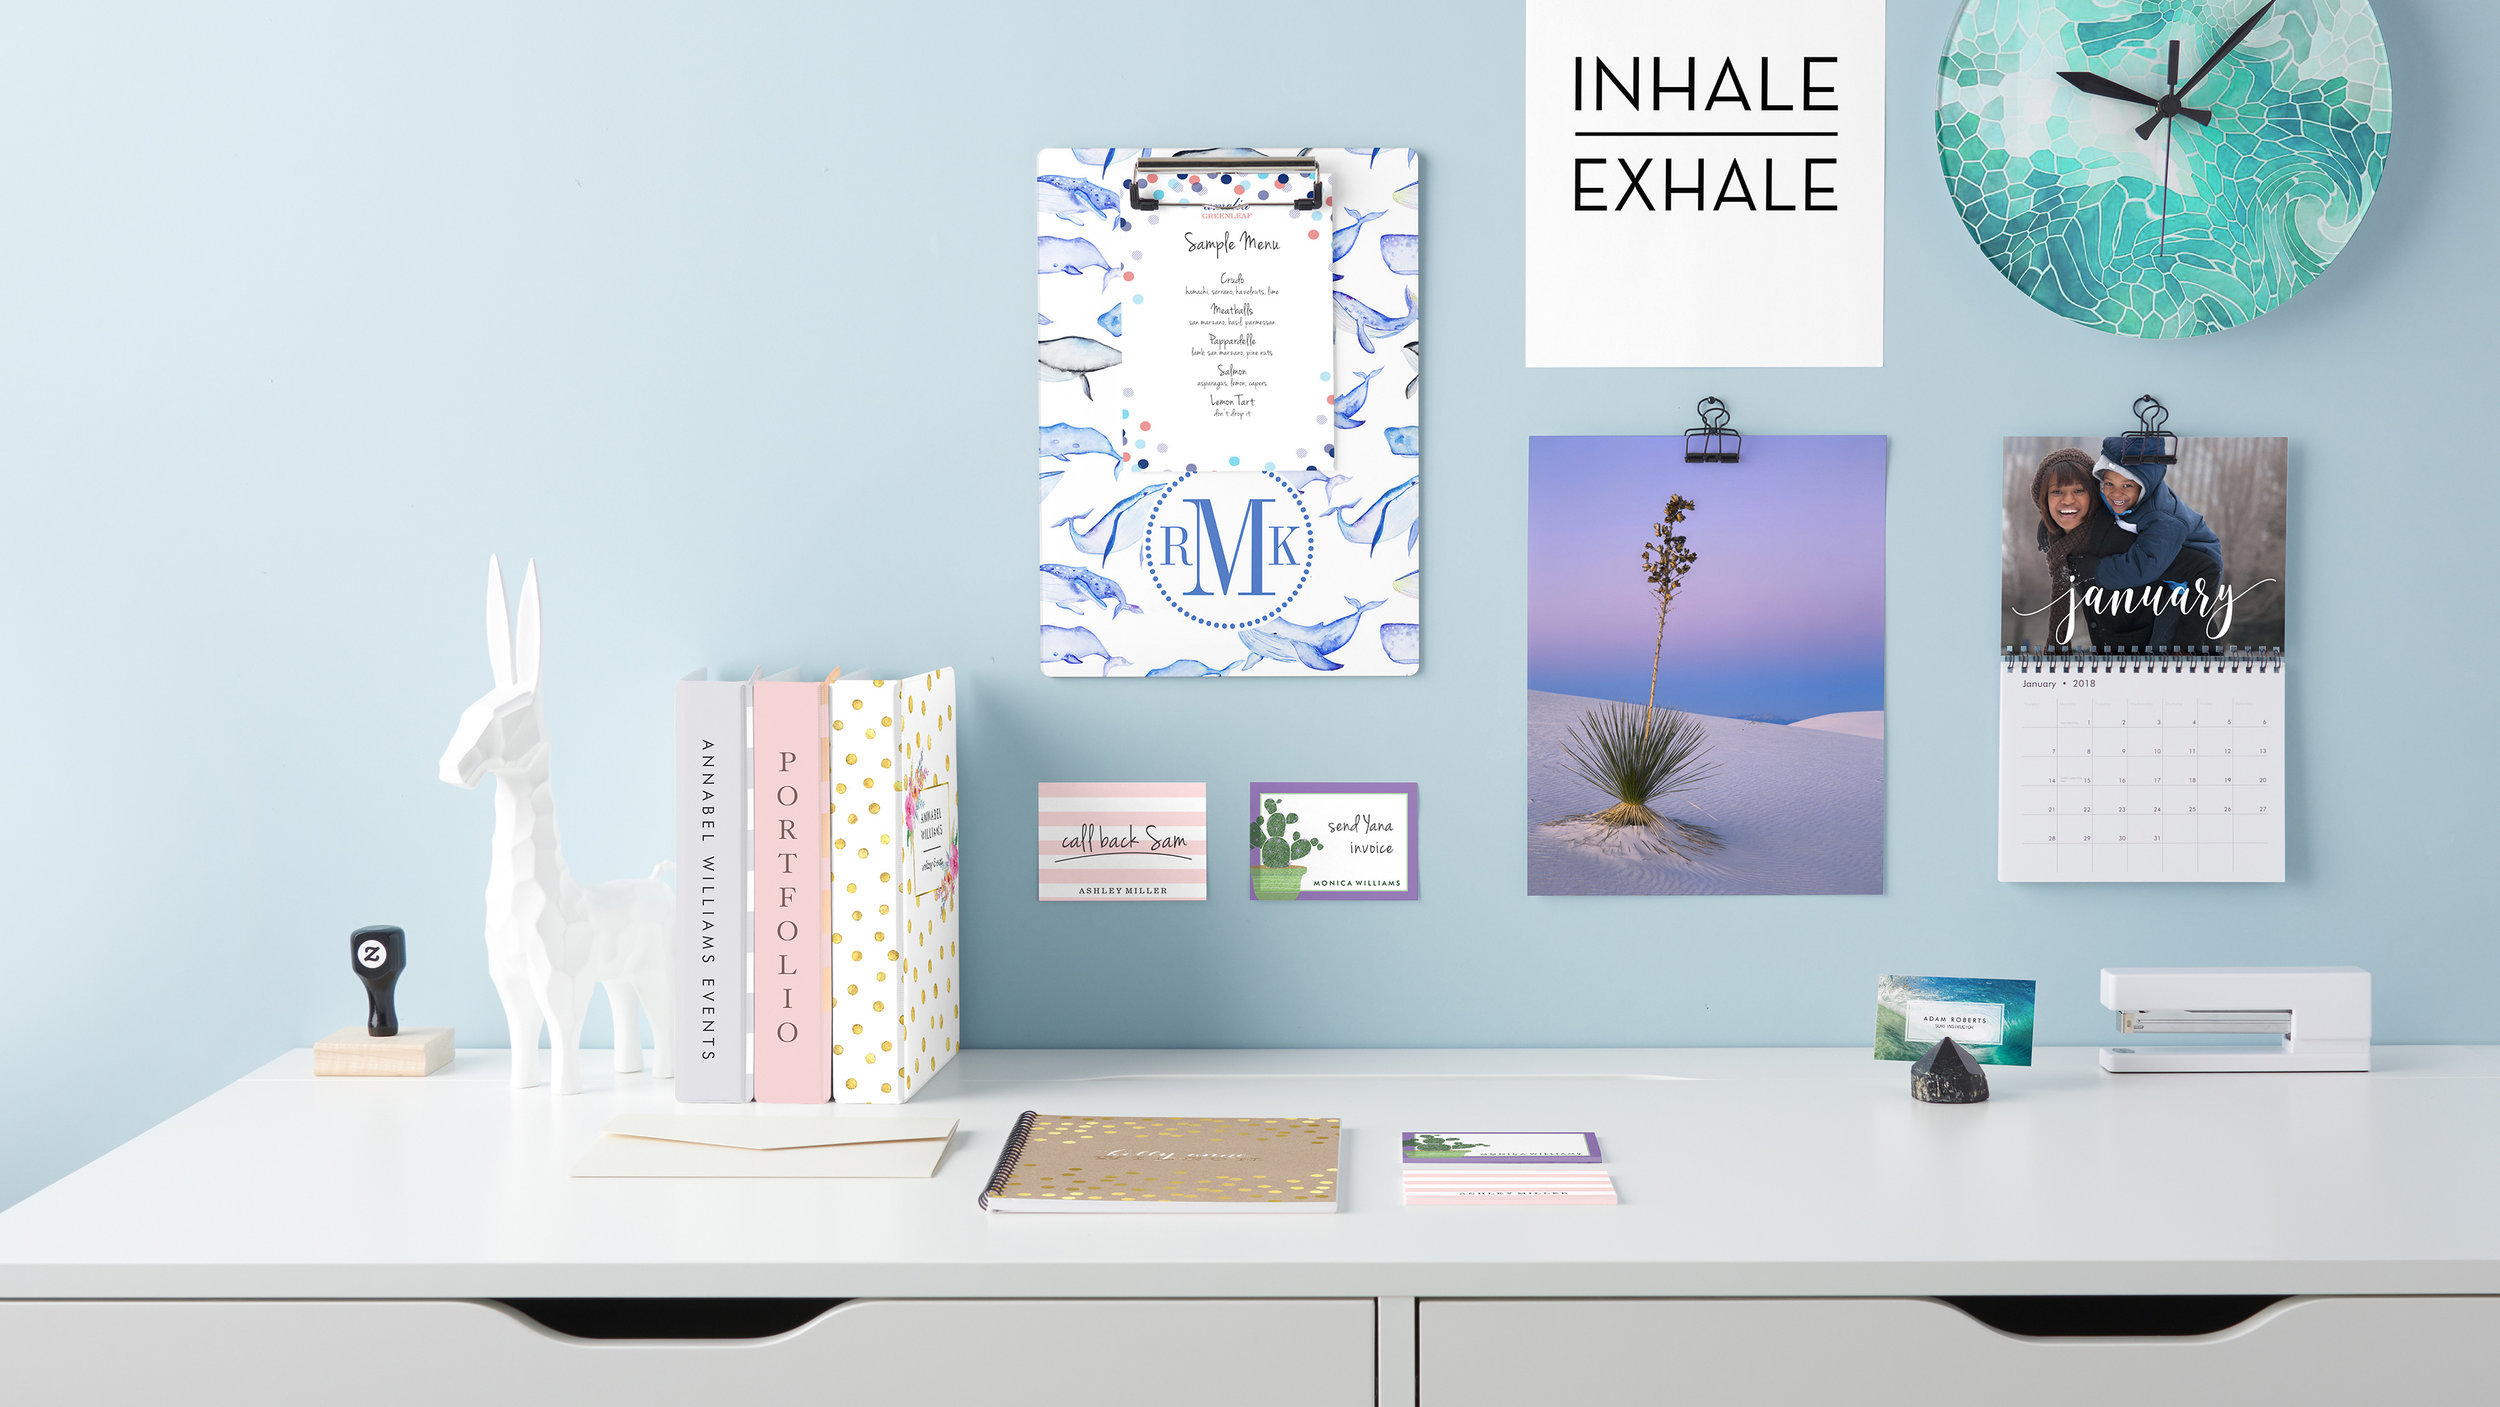 Office_Products_2018_Screen_Saver_2018.jpg